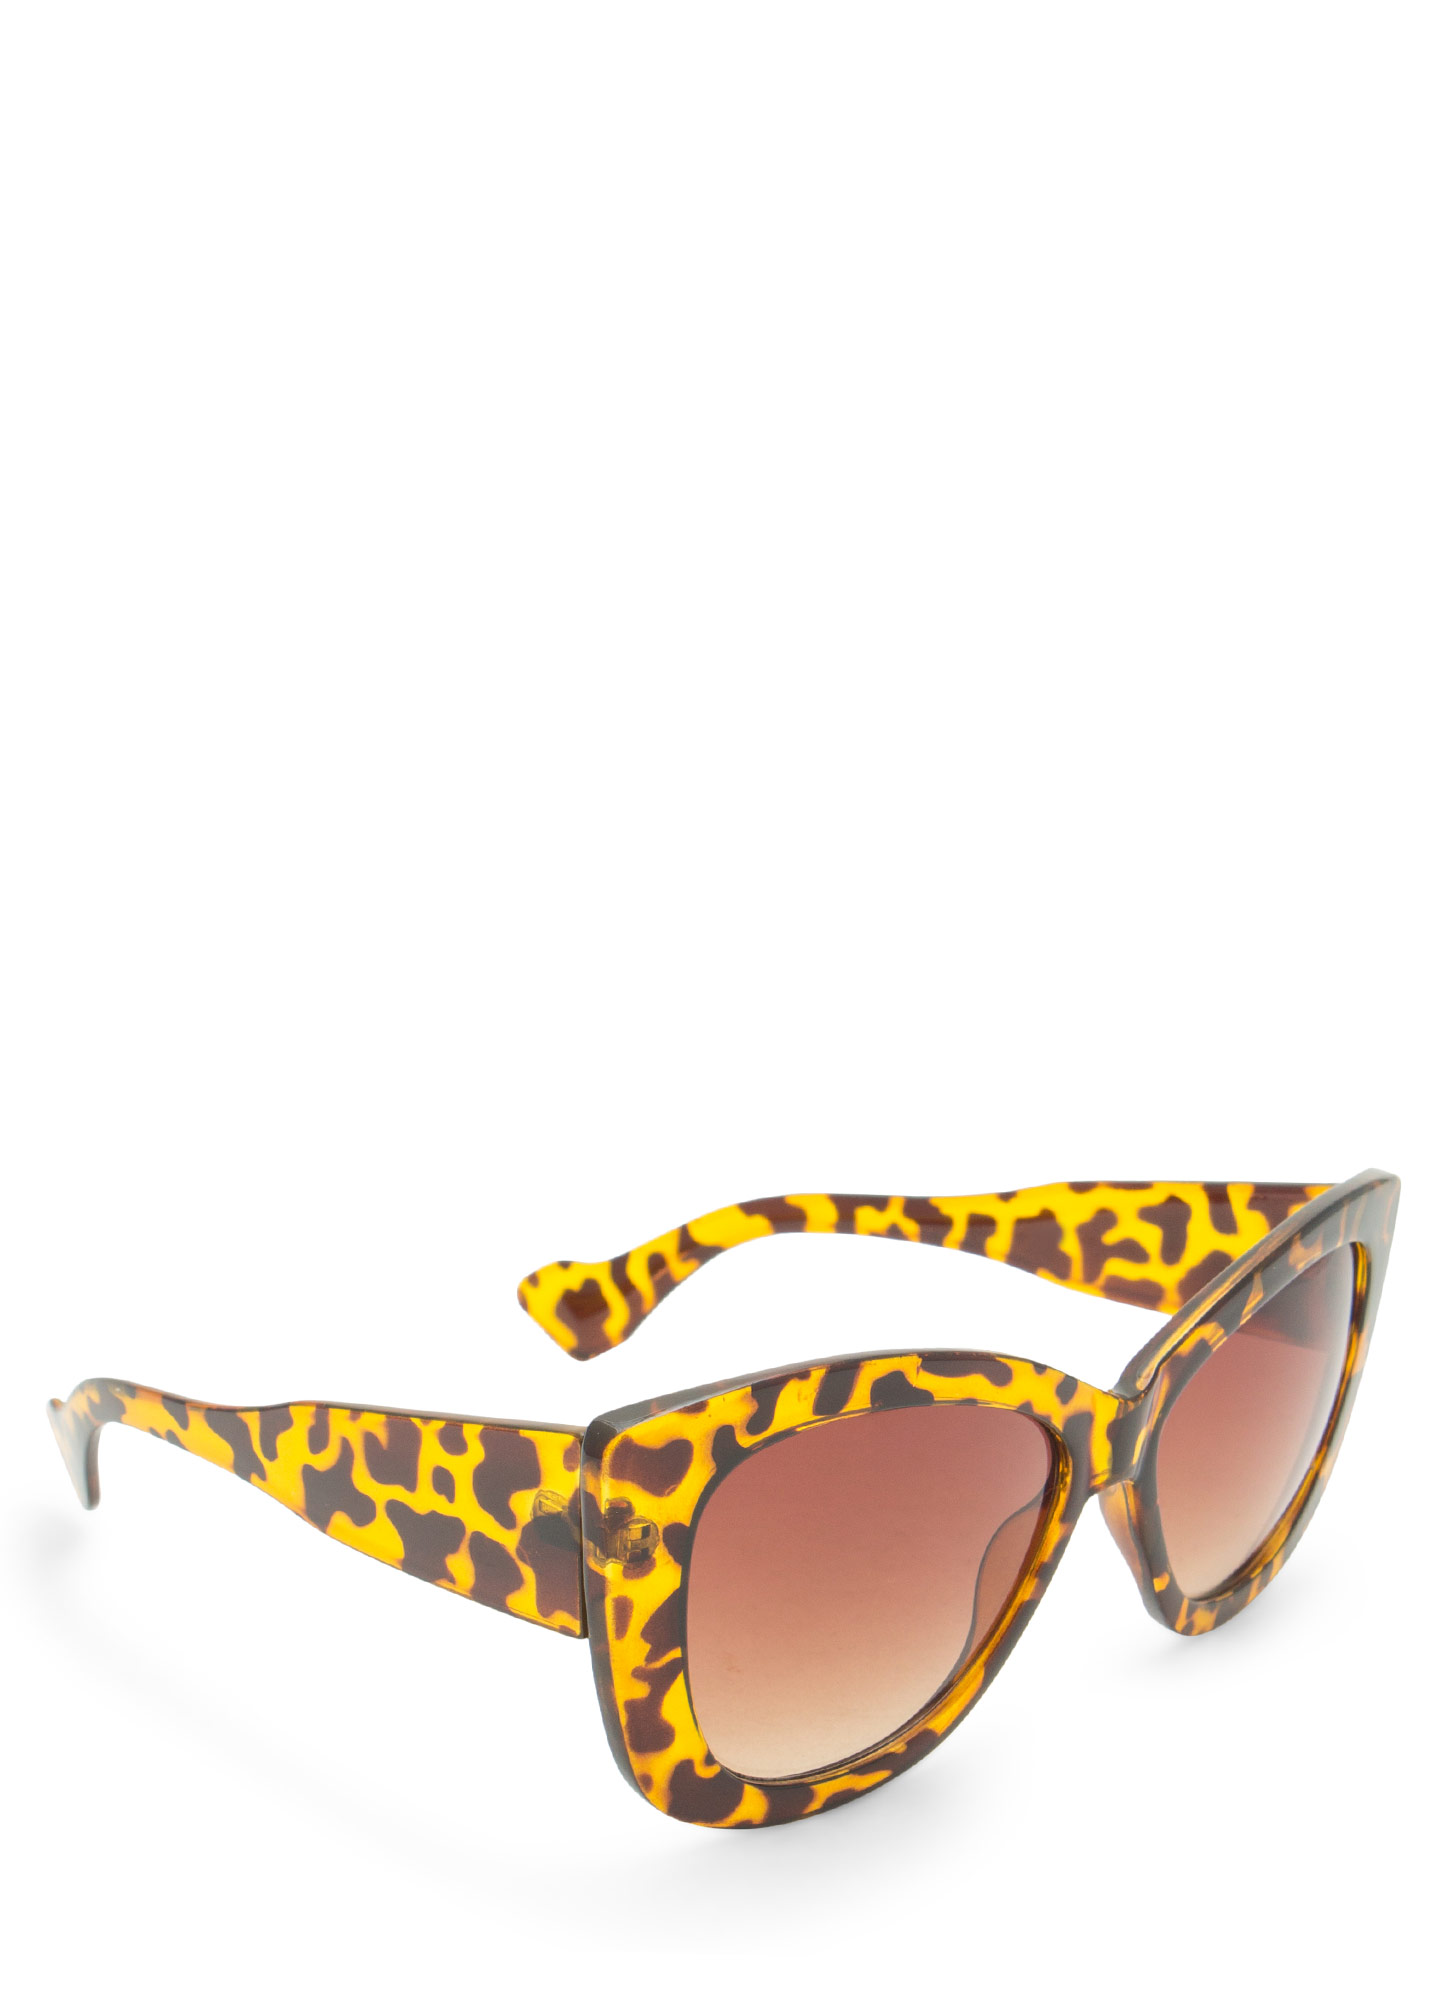 Thick Cat Eye Sunglasses TORTBROWN